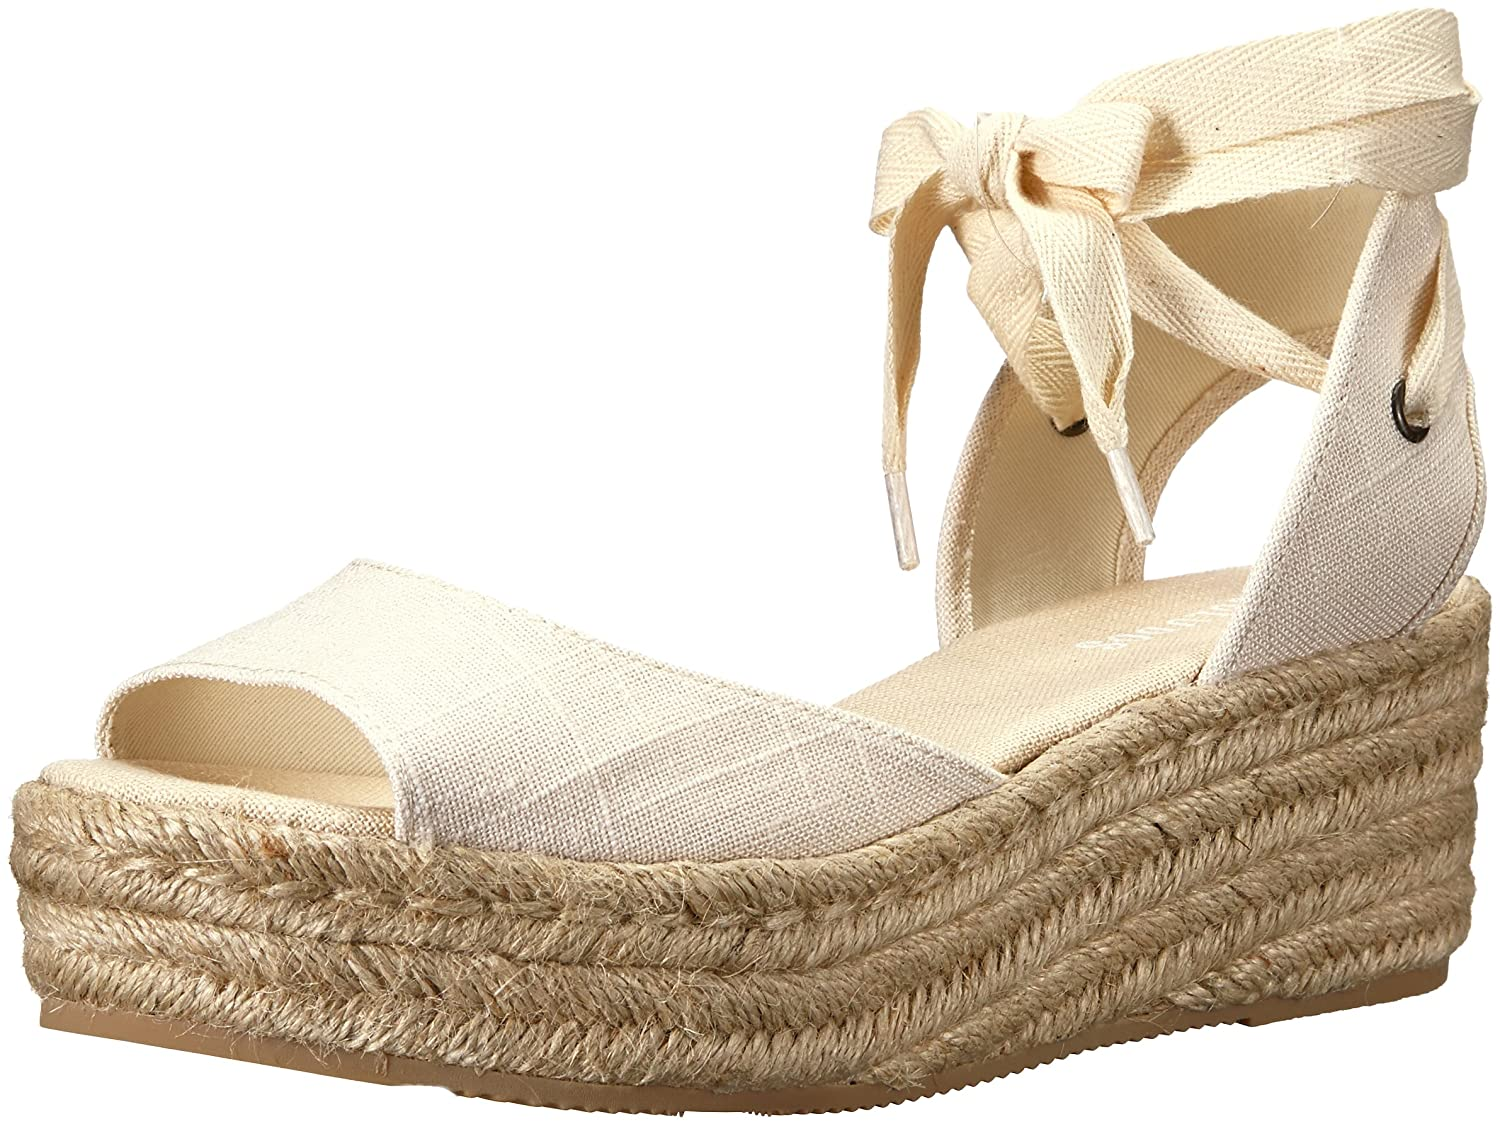 89b55d462e7 Soludos Women s Open-Toe Platform (60mm) Espadrille Wedge Sandal  Amazon.ca   Shoes   Handbags